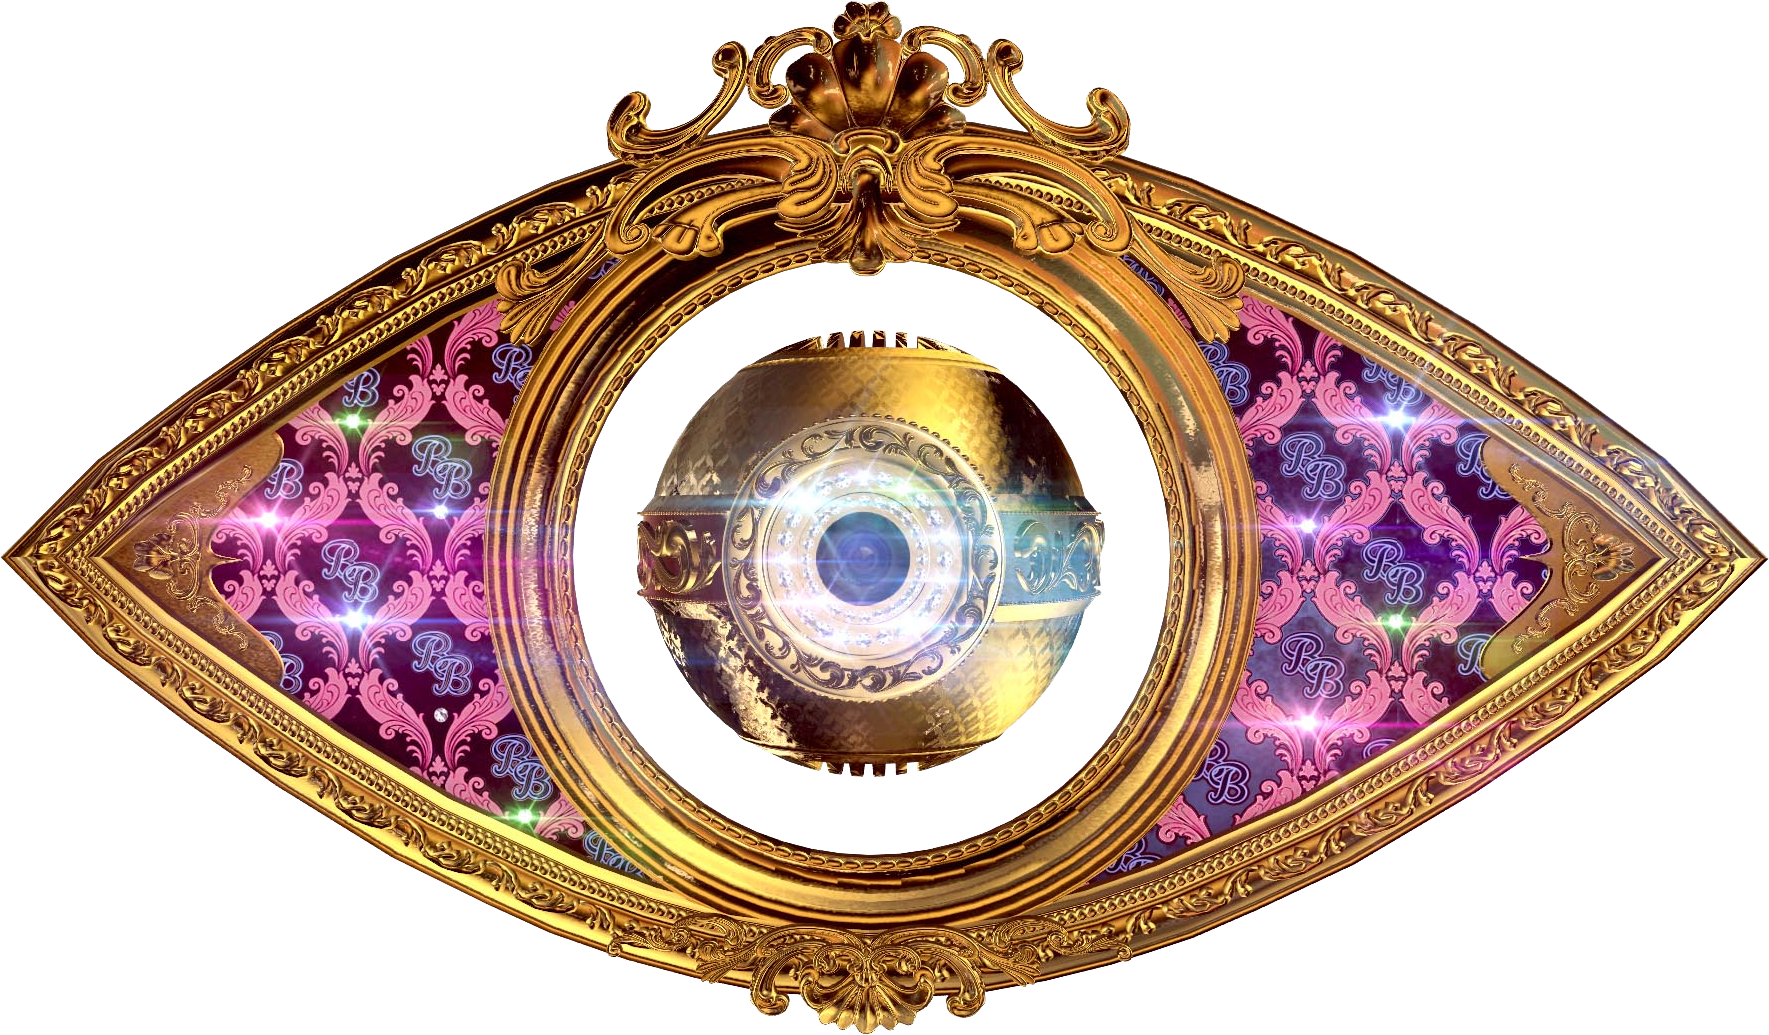 Celebrity Big Brother 1 (US) | Big Brother Wiki | FANDOM ...